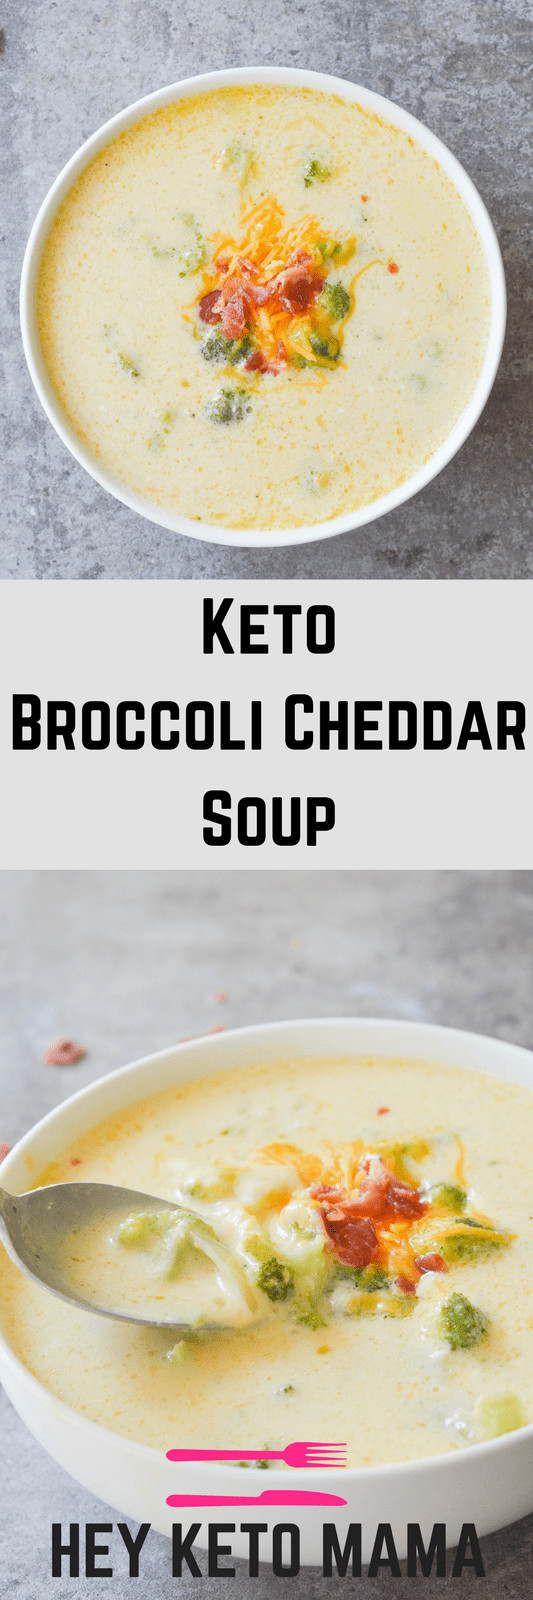 Keto Broccoli Soup  keto broccoli cheddar soup